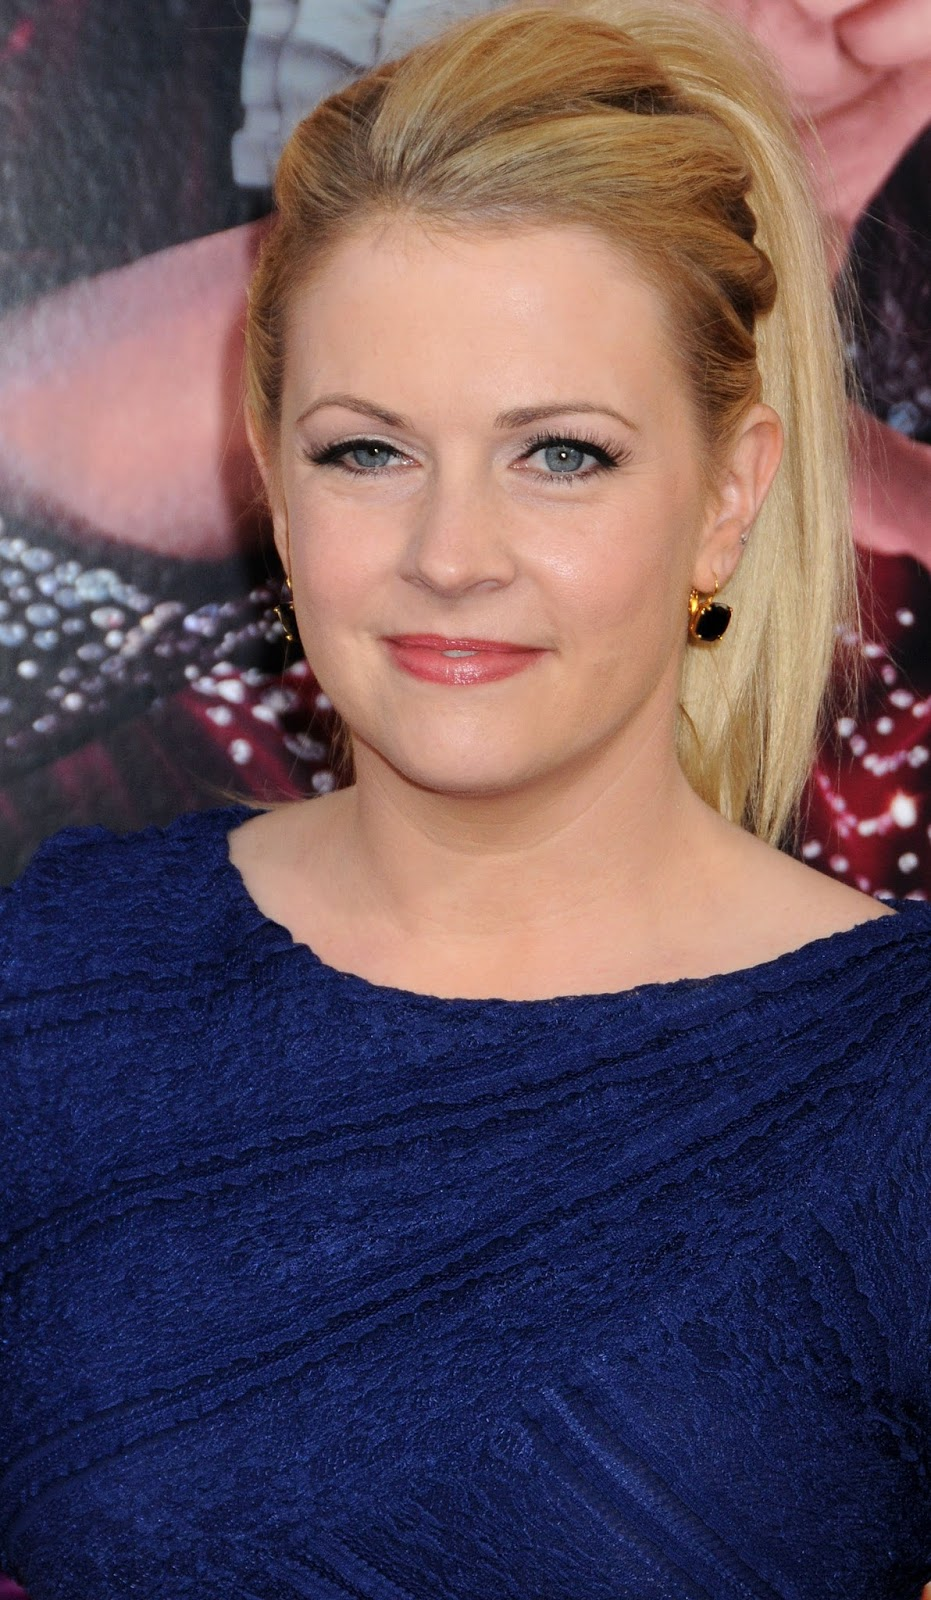 Naked Melissa Joan Hart 62 Images Sexy, Facebook-5328